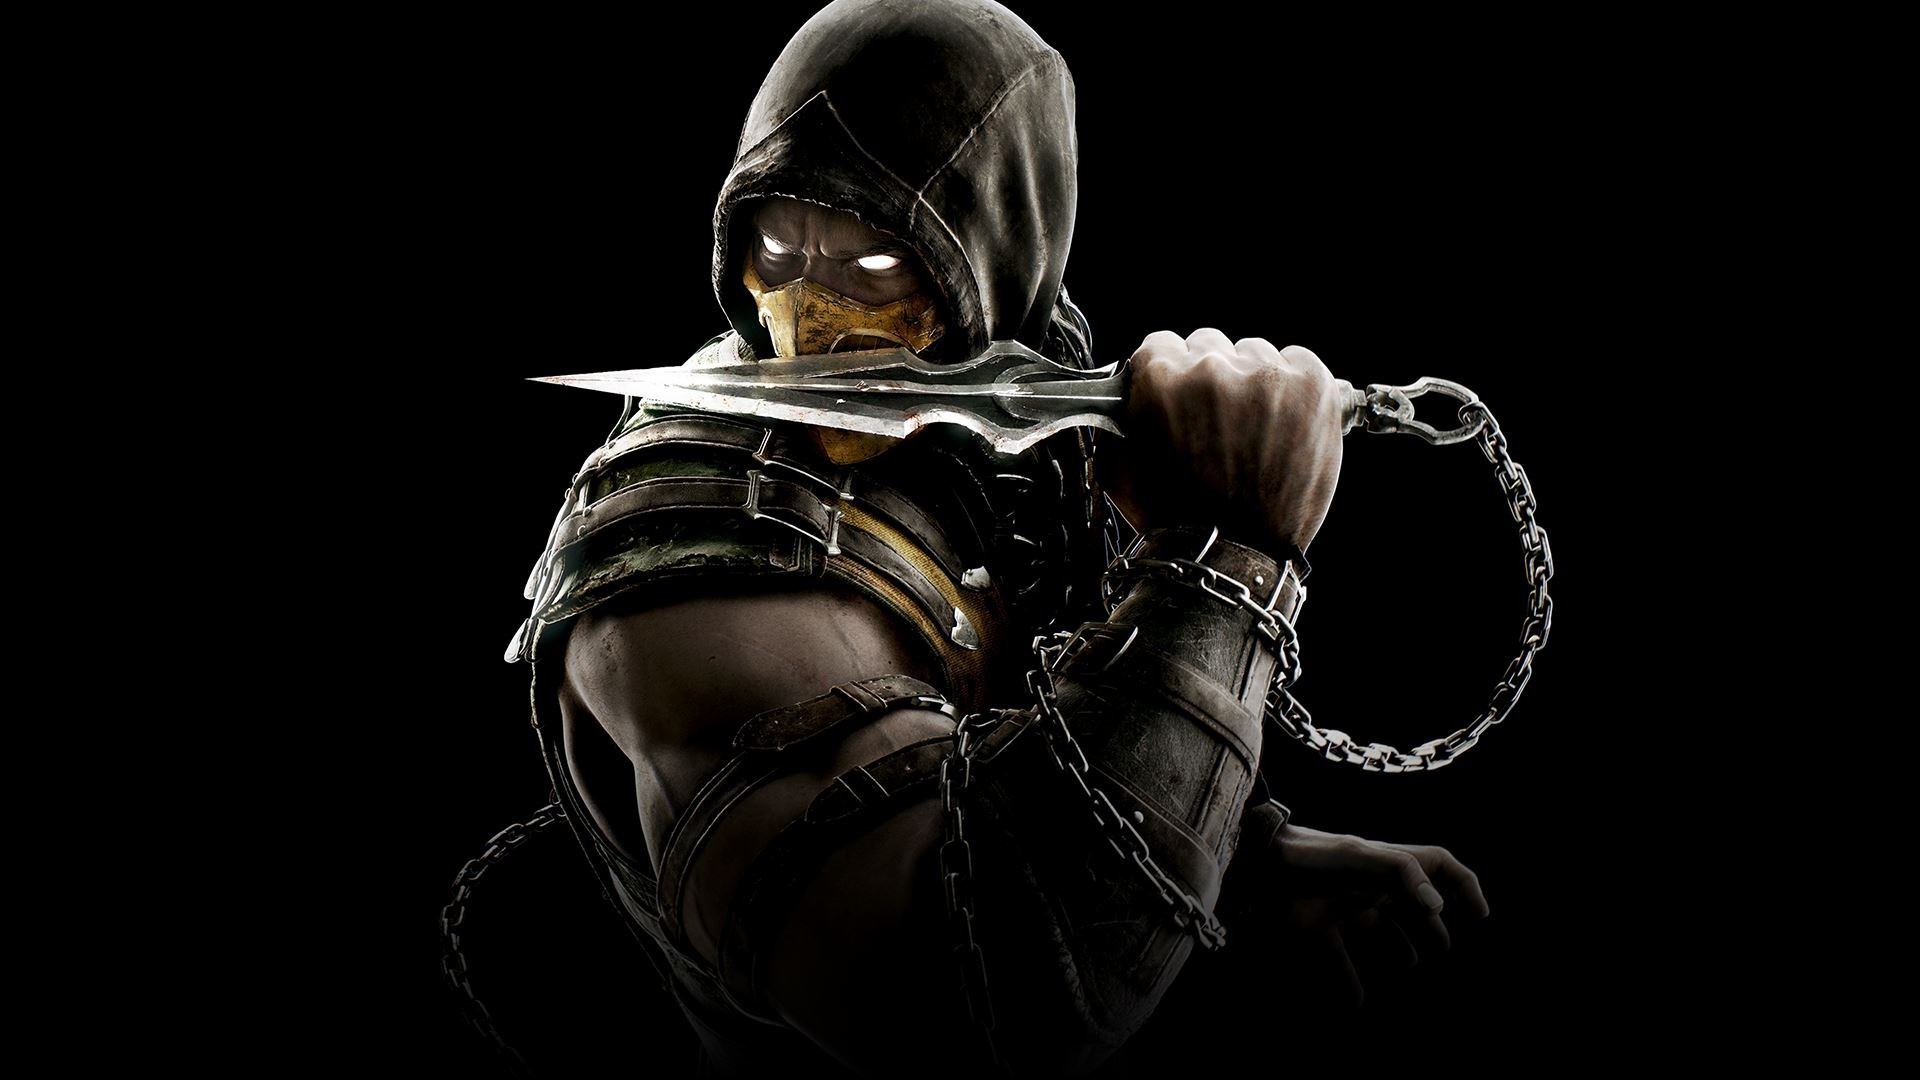 Mortal Kombat X Scorpio 3d Cool Video Games Wallpapers: Mortal Kombat 9 Scorpion Wallpaper ·① WallpaperTag